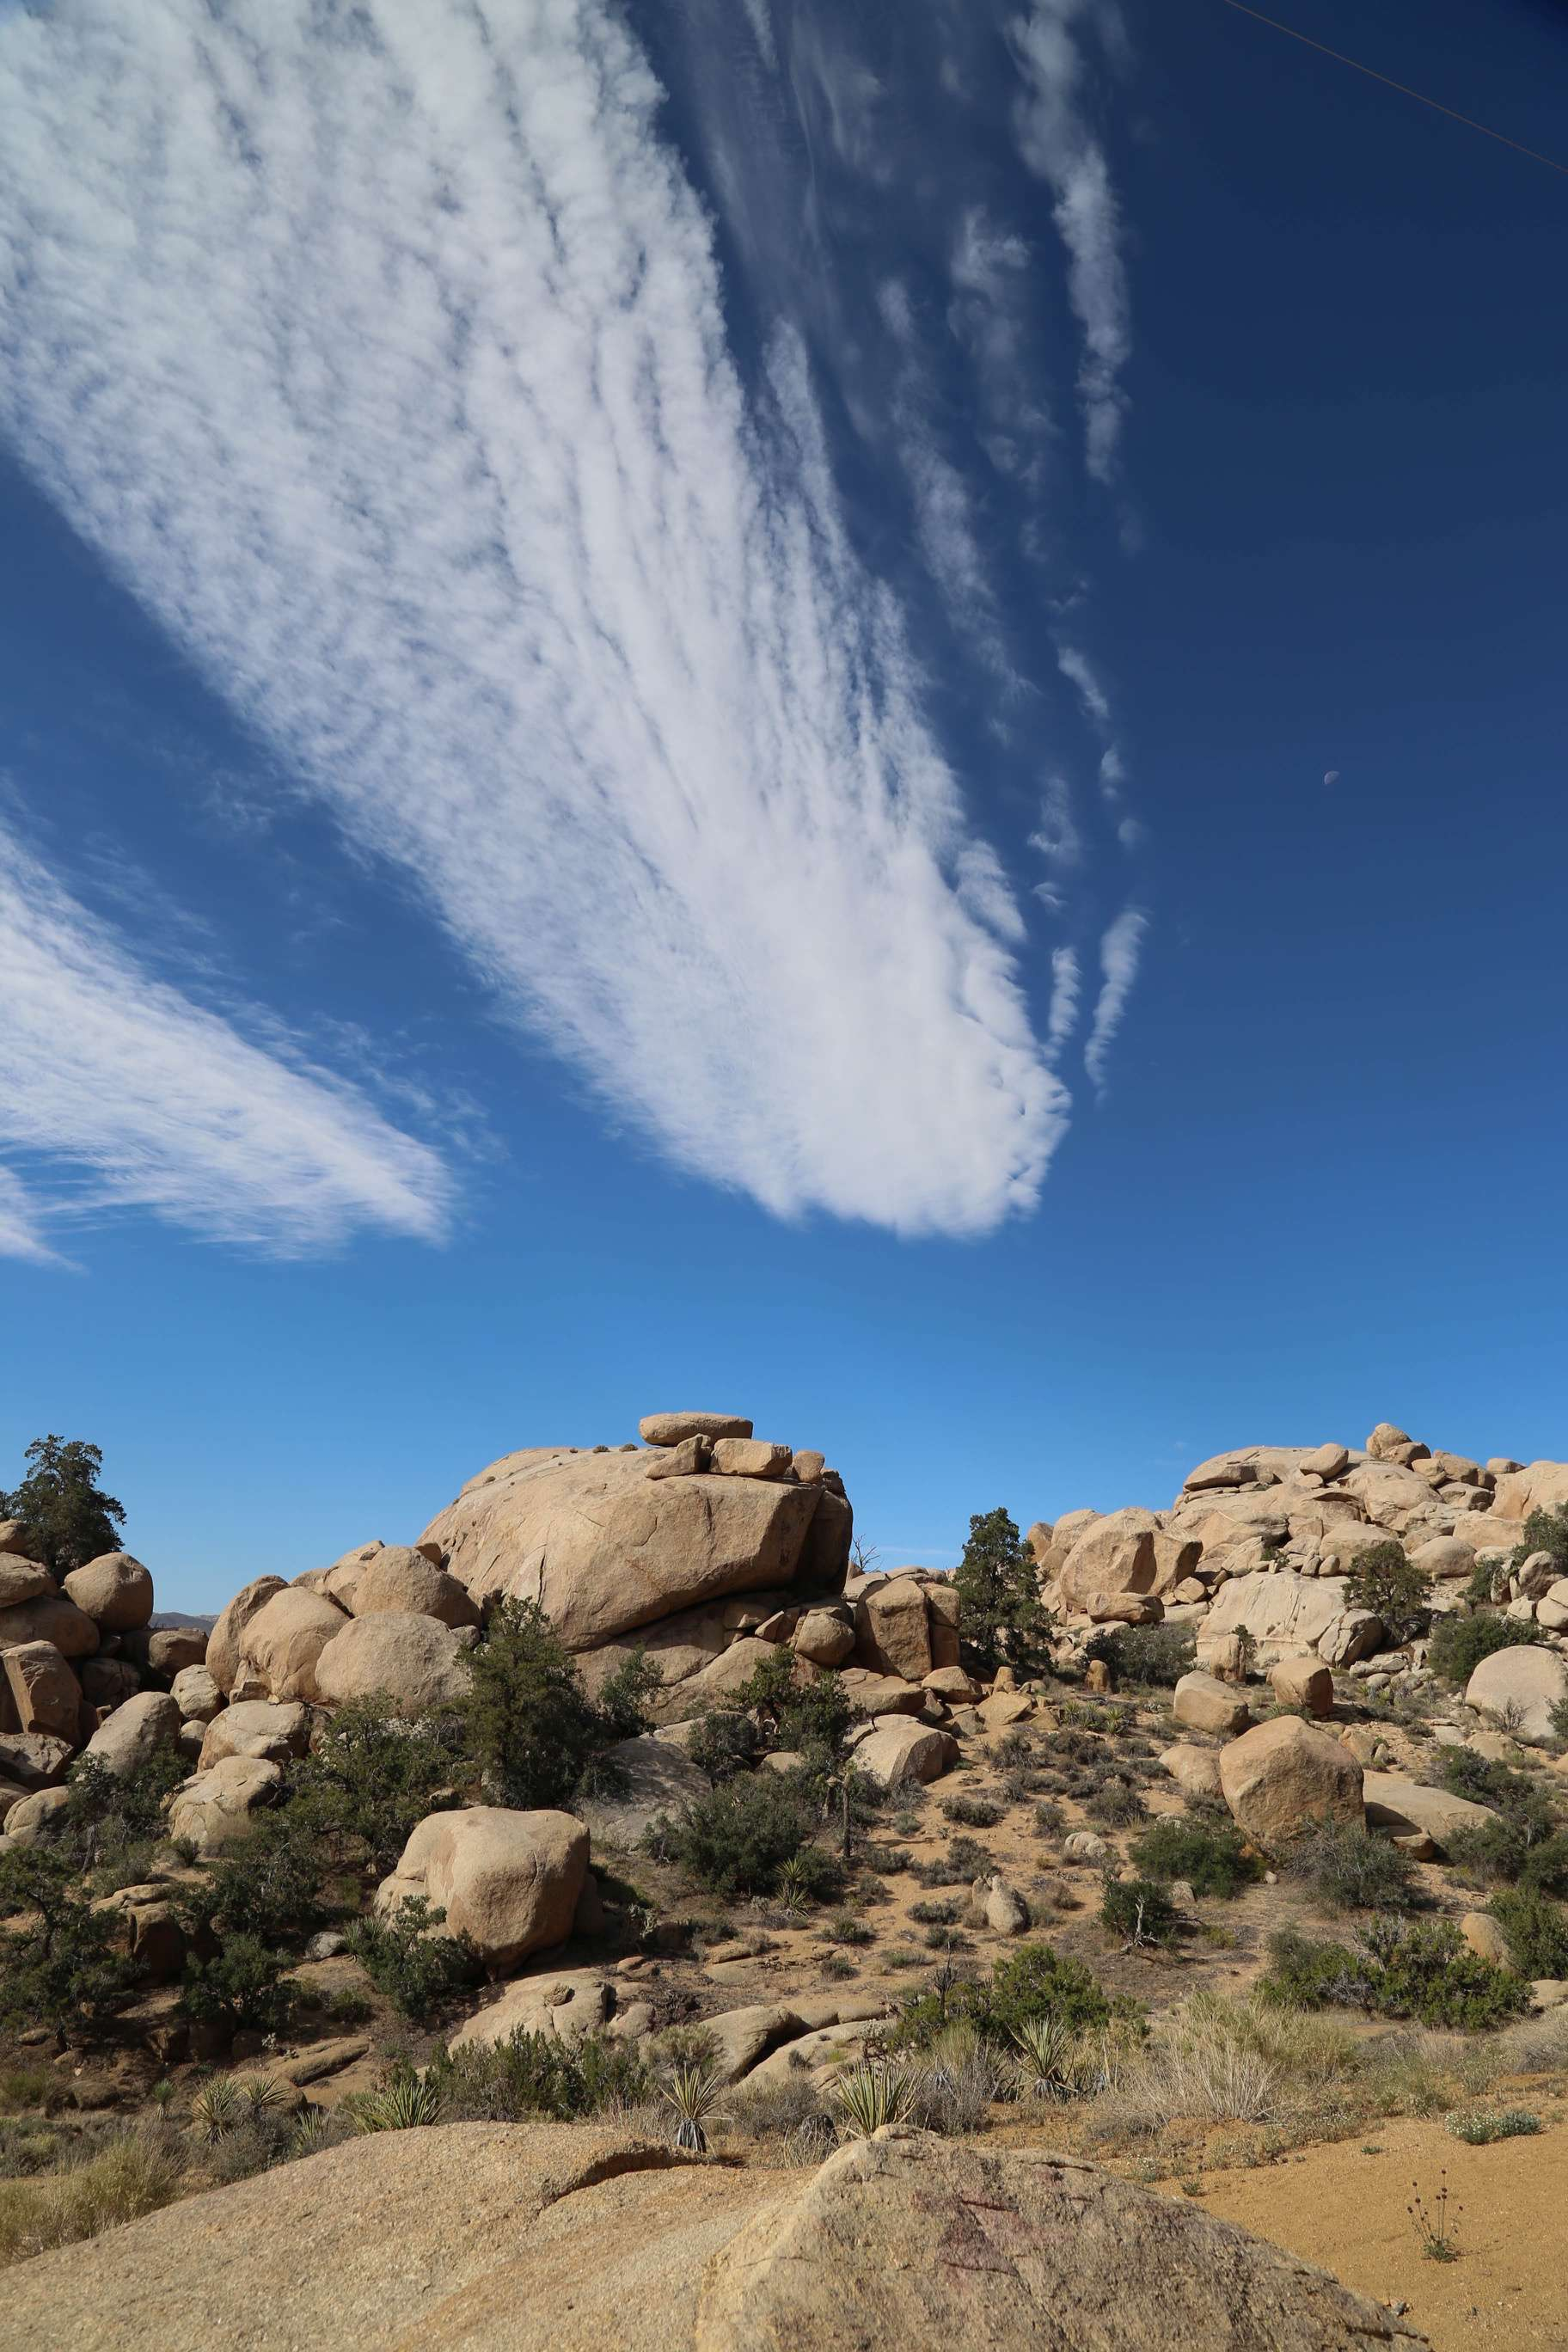 Stunning blue sky, clouds and land merge into serenity in Pioneertown.